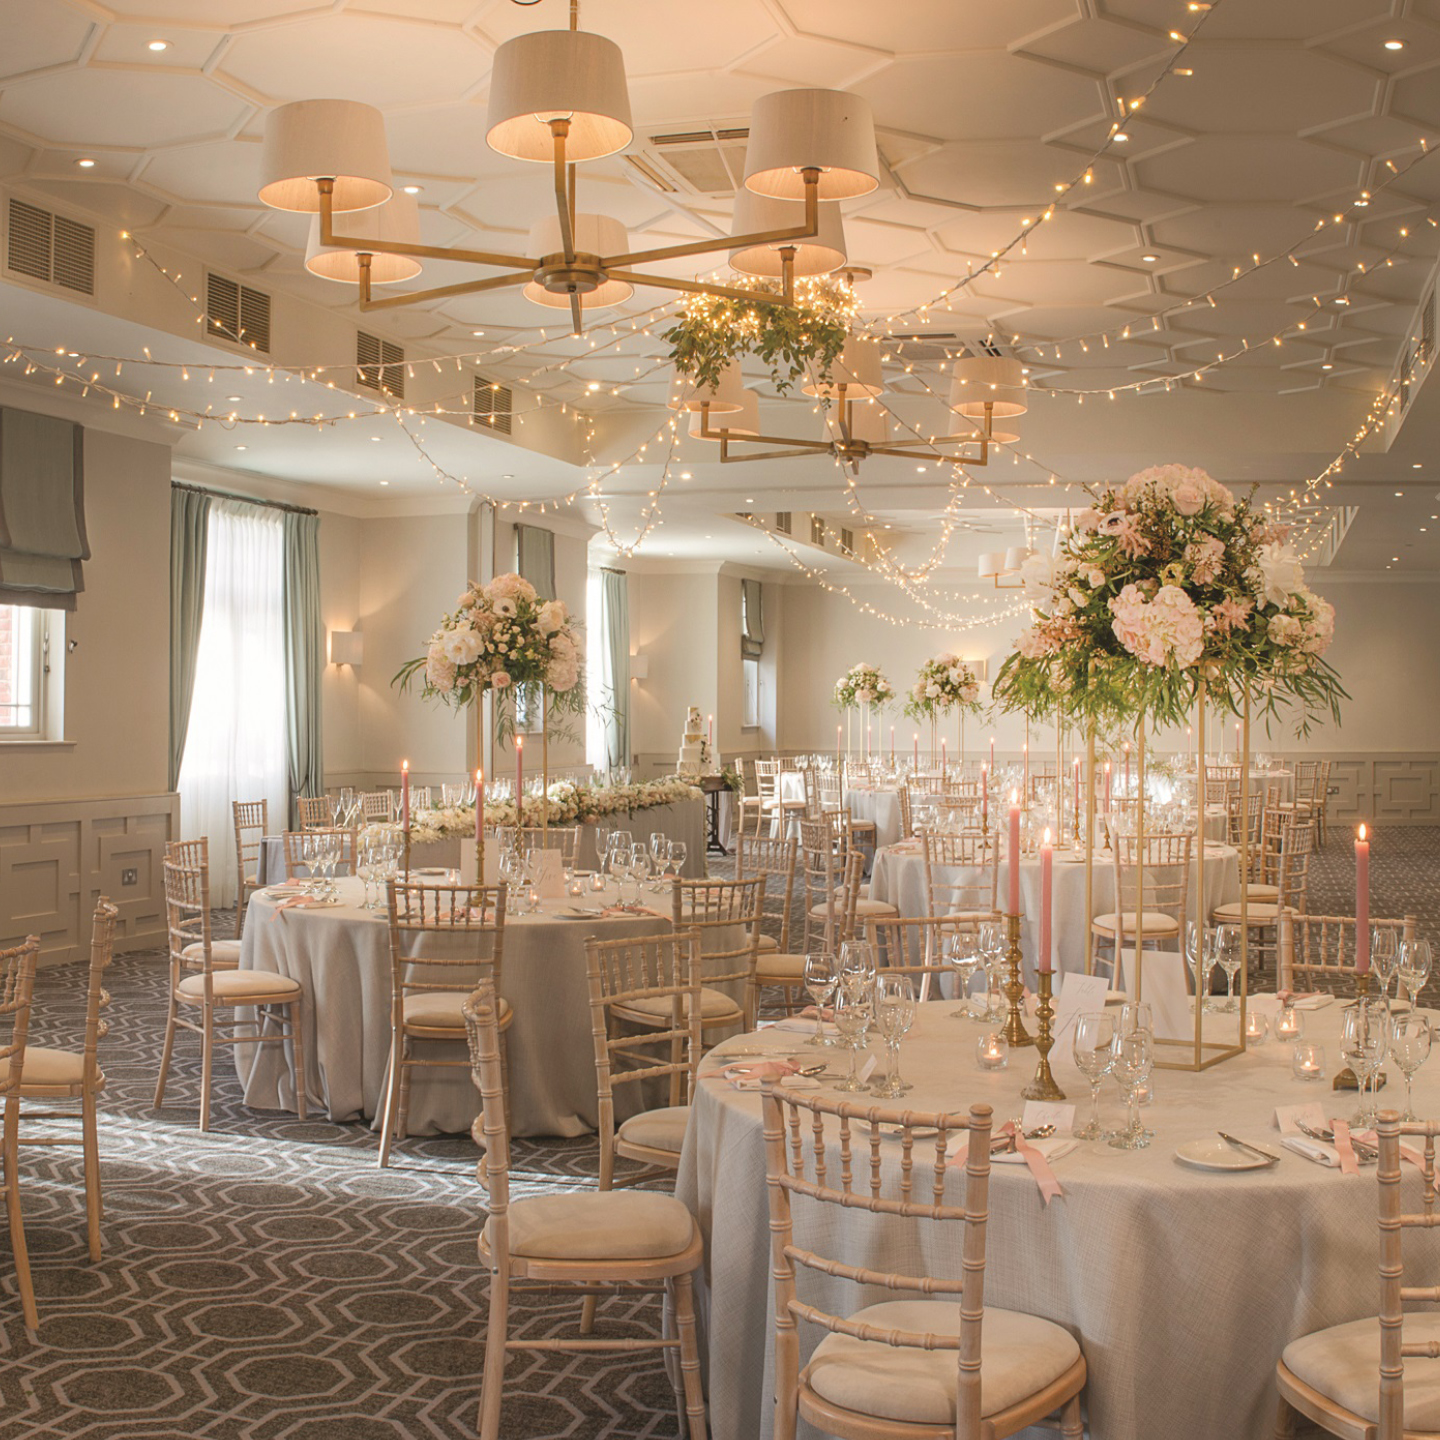 Evelyn suite at Wotton House wedding